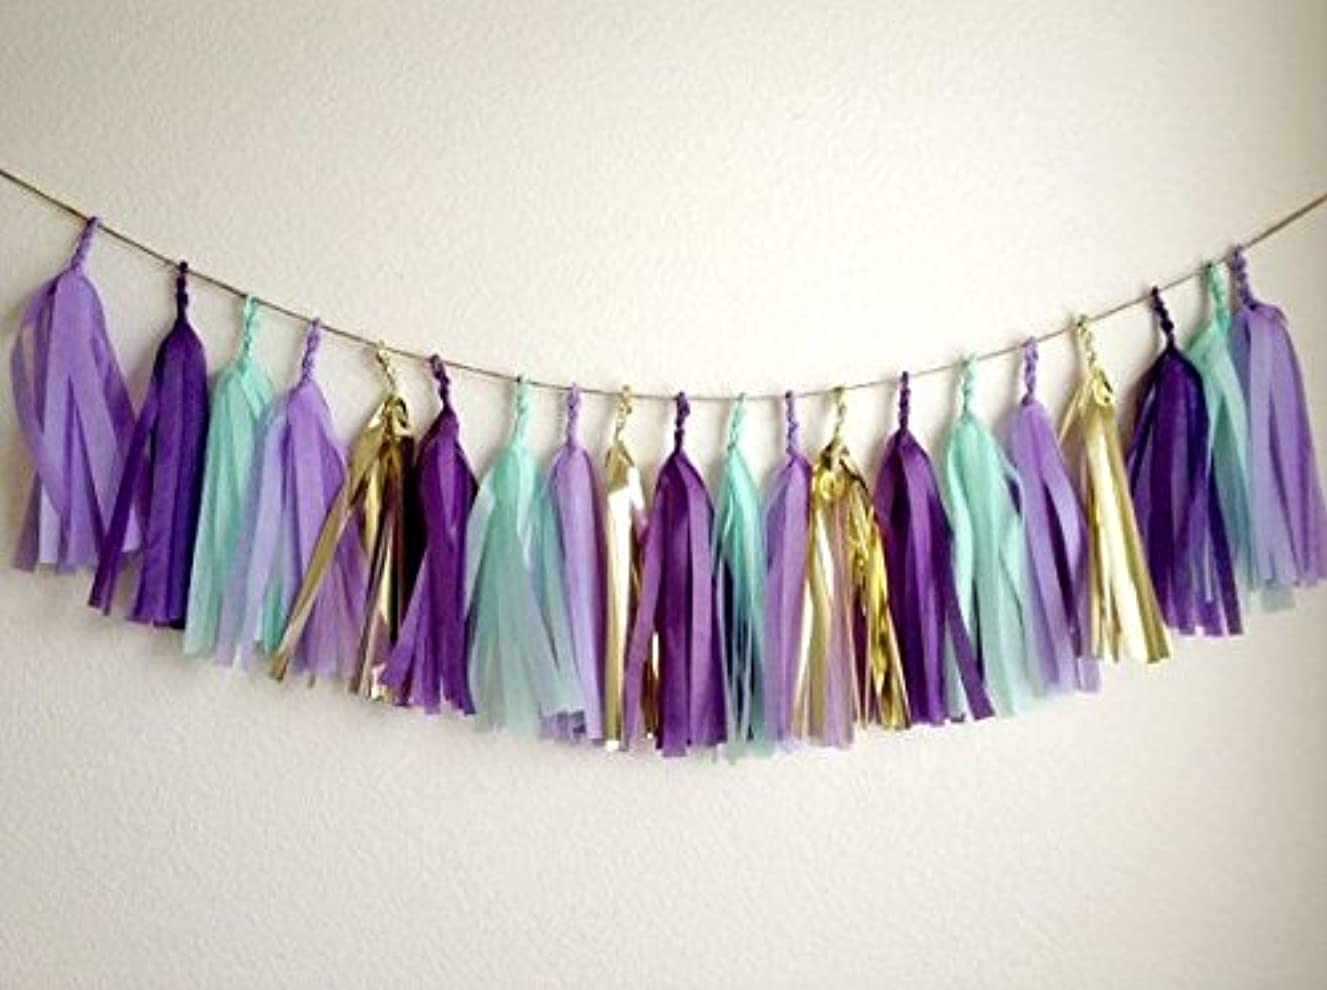 16 X Originals Group Purple Tissue Paper Tassels for Party Wedding Gold Garland Bunting Pom Pom